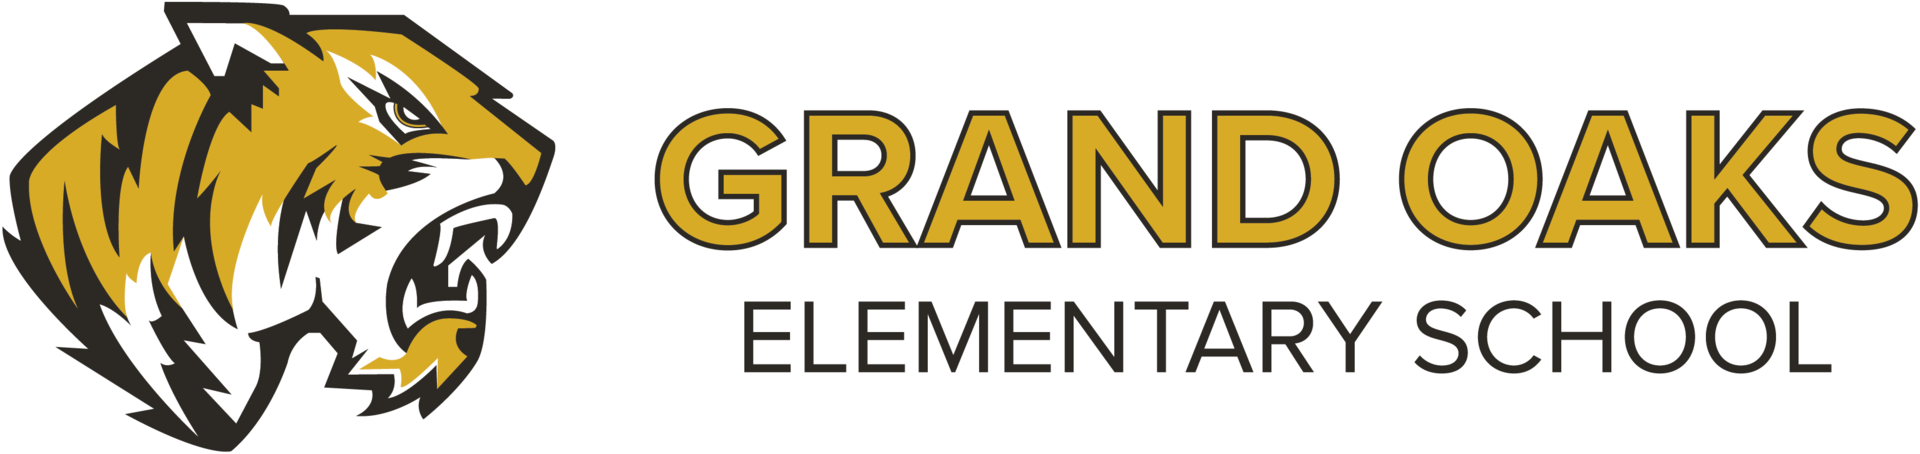 Grand Oaks Elementary School Logo with Tiger